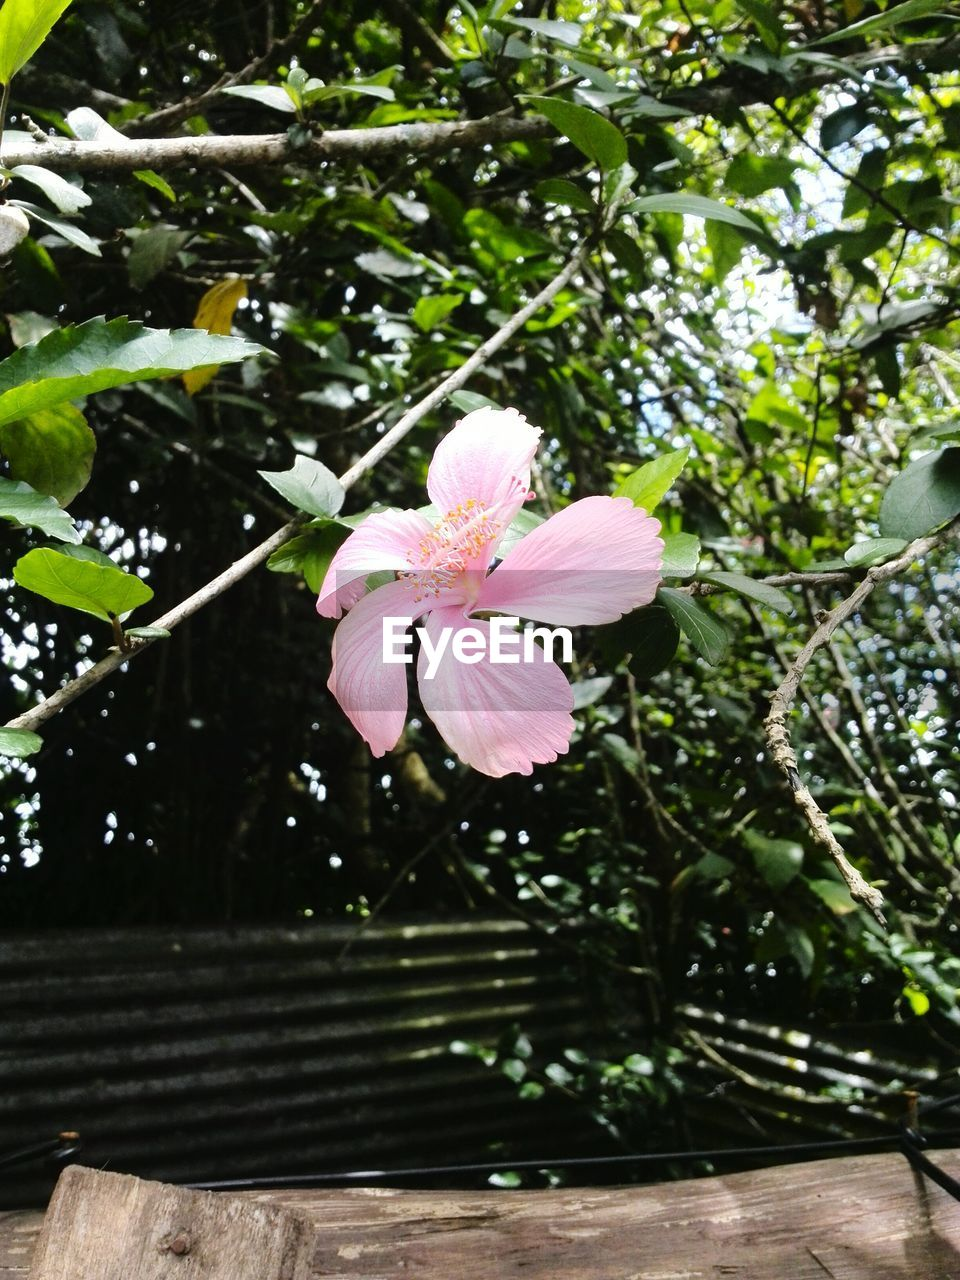 flower, fragility, beauty in nature, pink color, petal, growth, nature, freshness, no people, flower head, day, green color, outdoors, blooming, plant, close-up, periwinkle, hibiscus, tree